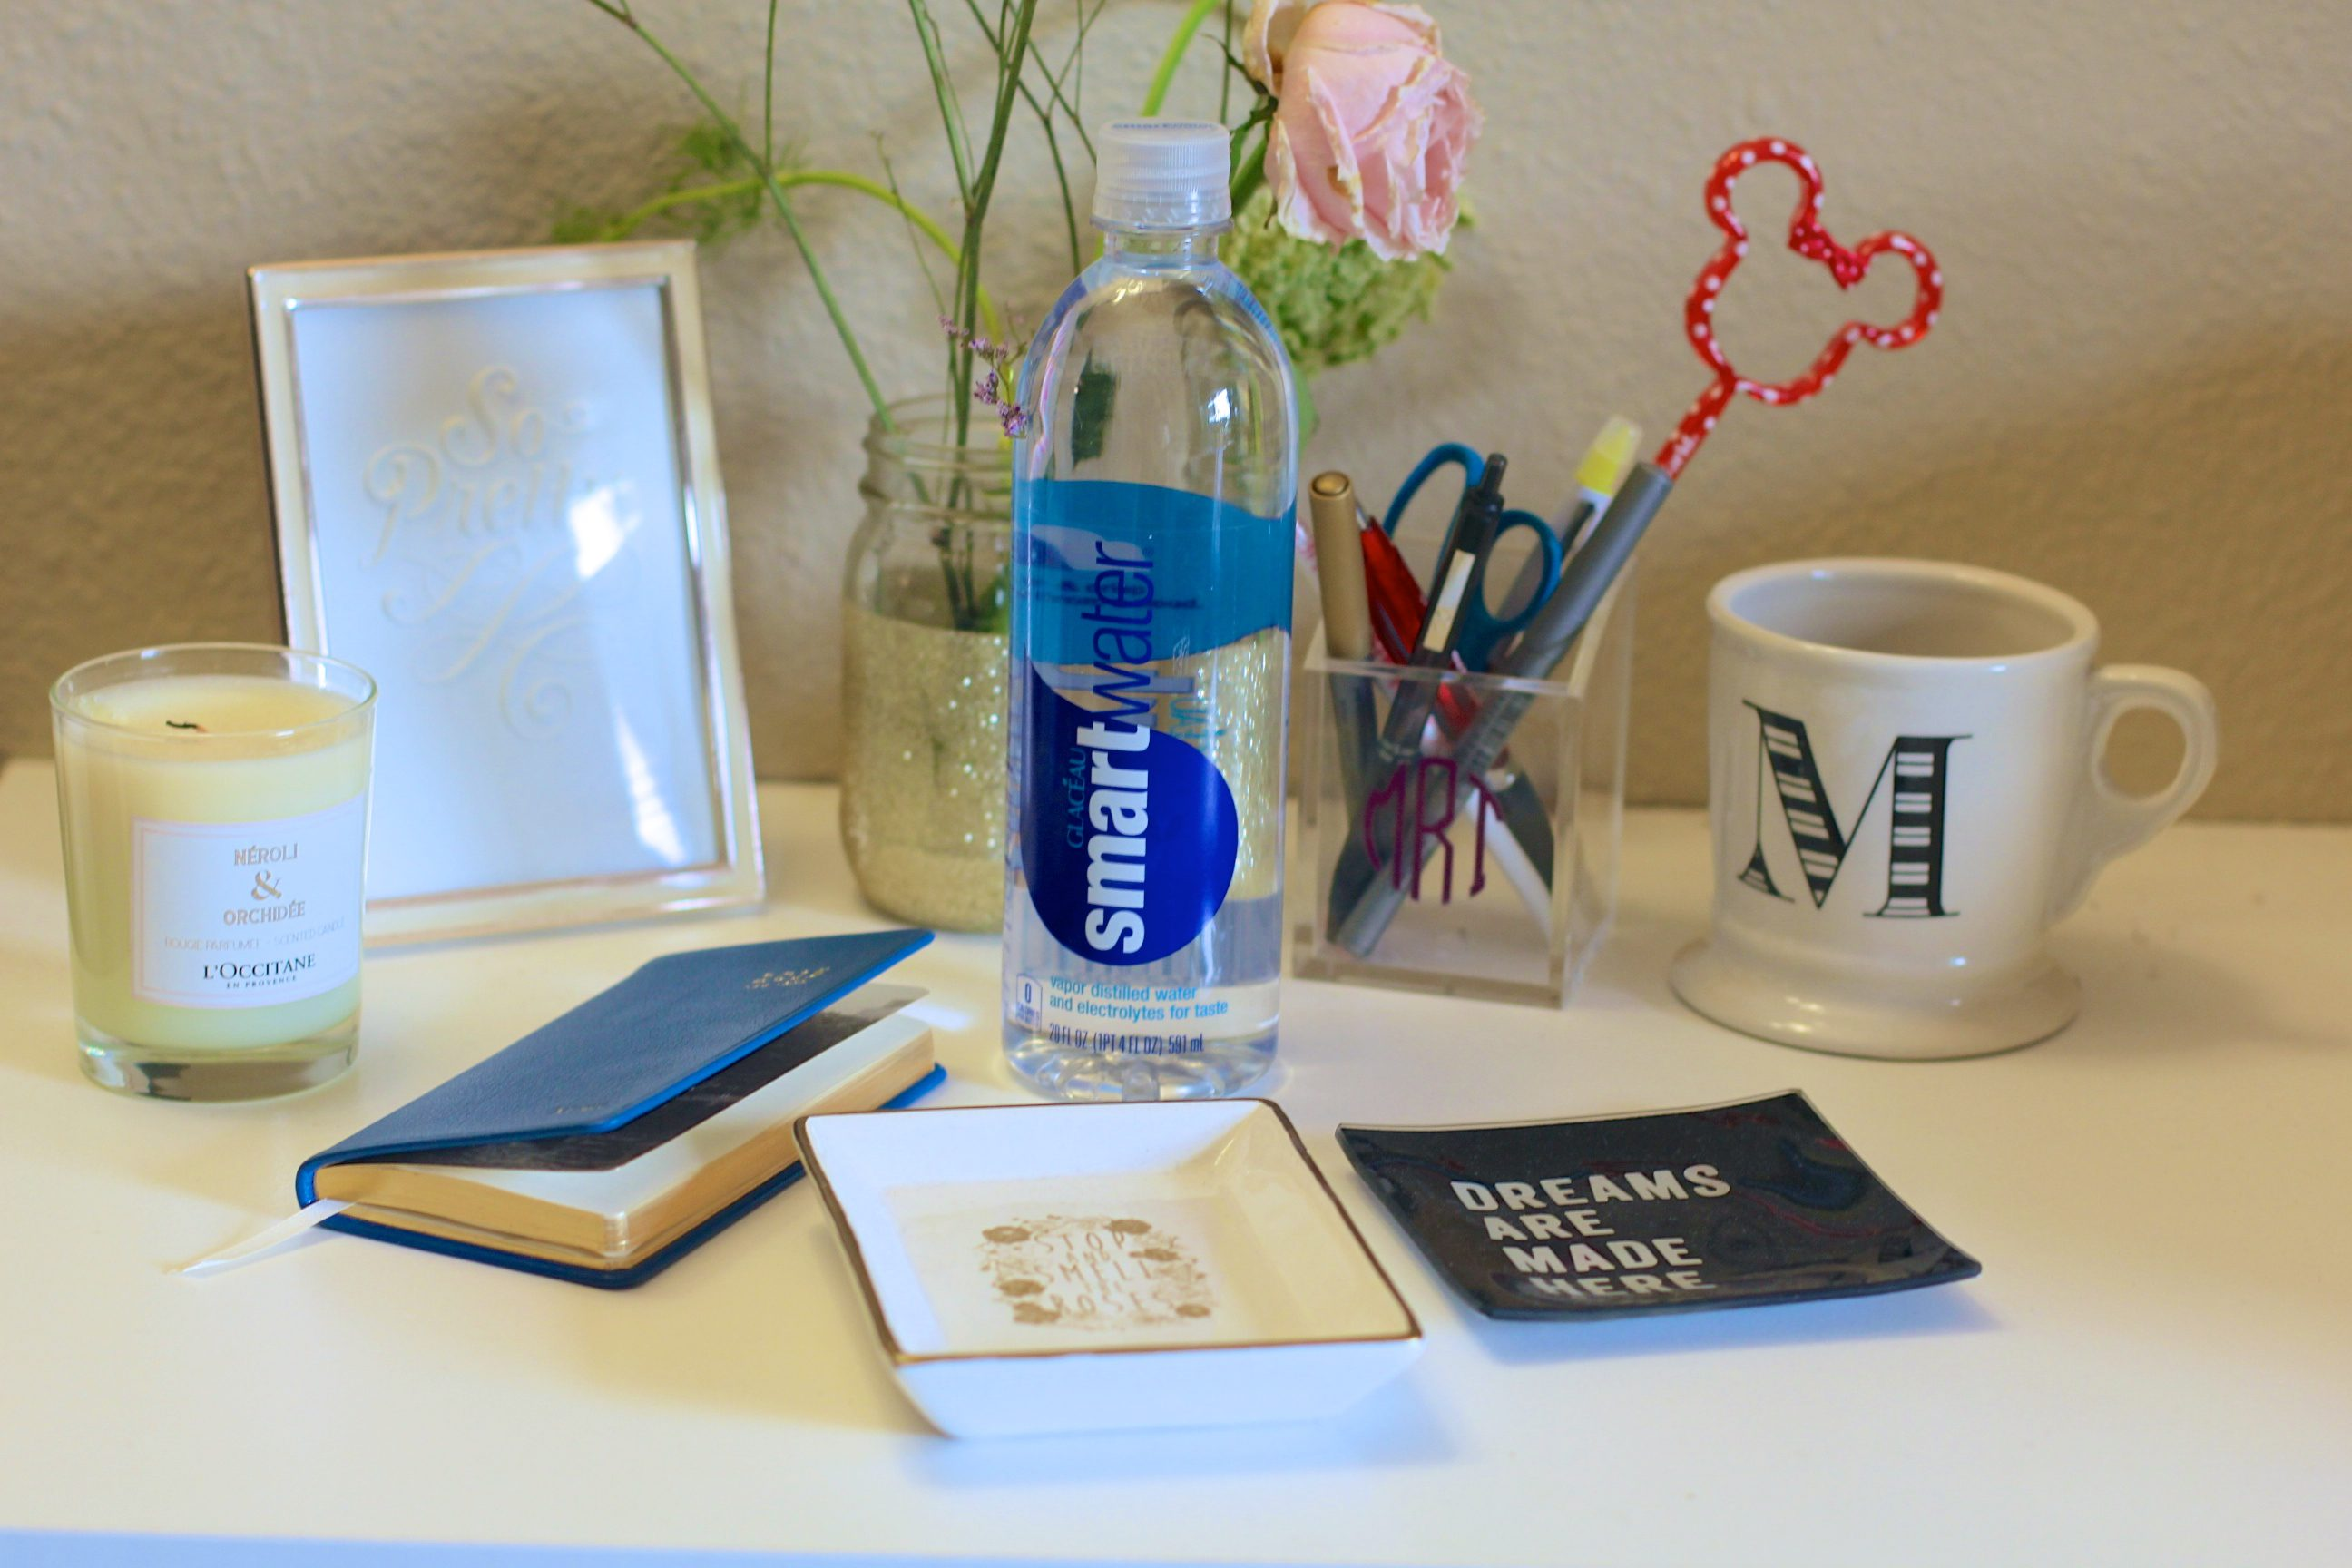 missyonmadison, melissa tierney, vera bradley, nyfw, smartwater, nyfw survival guide, vera bradley red bag, red satchel, vera bradley red satchel, scentbird, refillible perfume, viktor and rolf, gigi ny date book, gigi ny agenda, smart water, up up up, rebecca minkoff leather pouch, initial leather pouch, portable iphone charger, back up iphone charger, ny, new york fashion week, mbfw, mercedes benz fashion week, what to bring to fashion week,